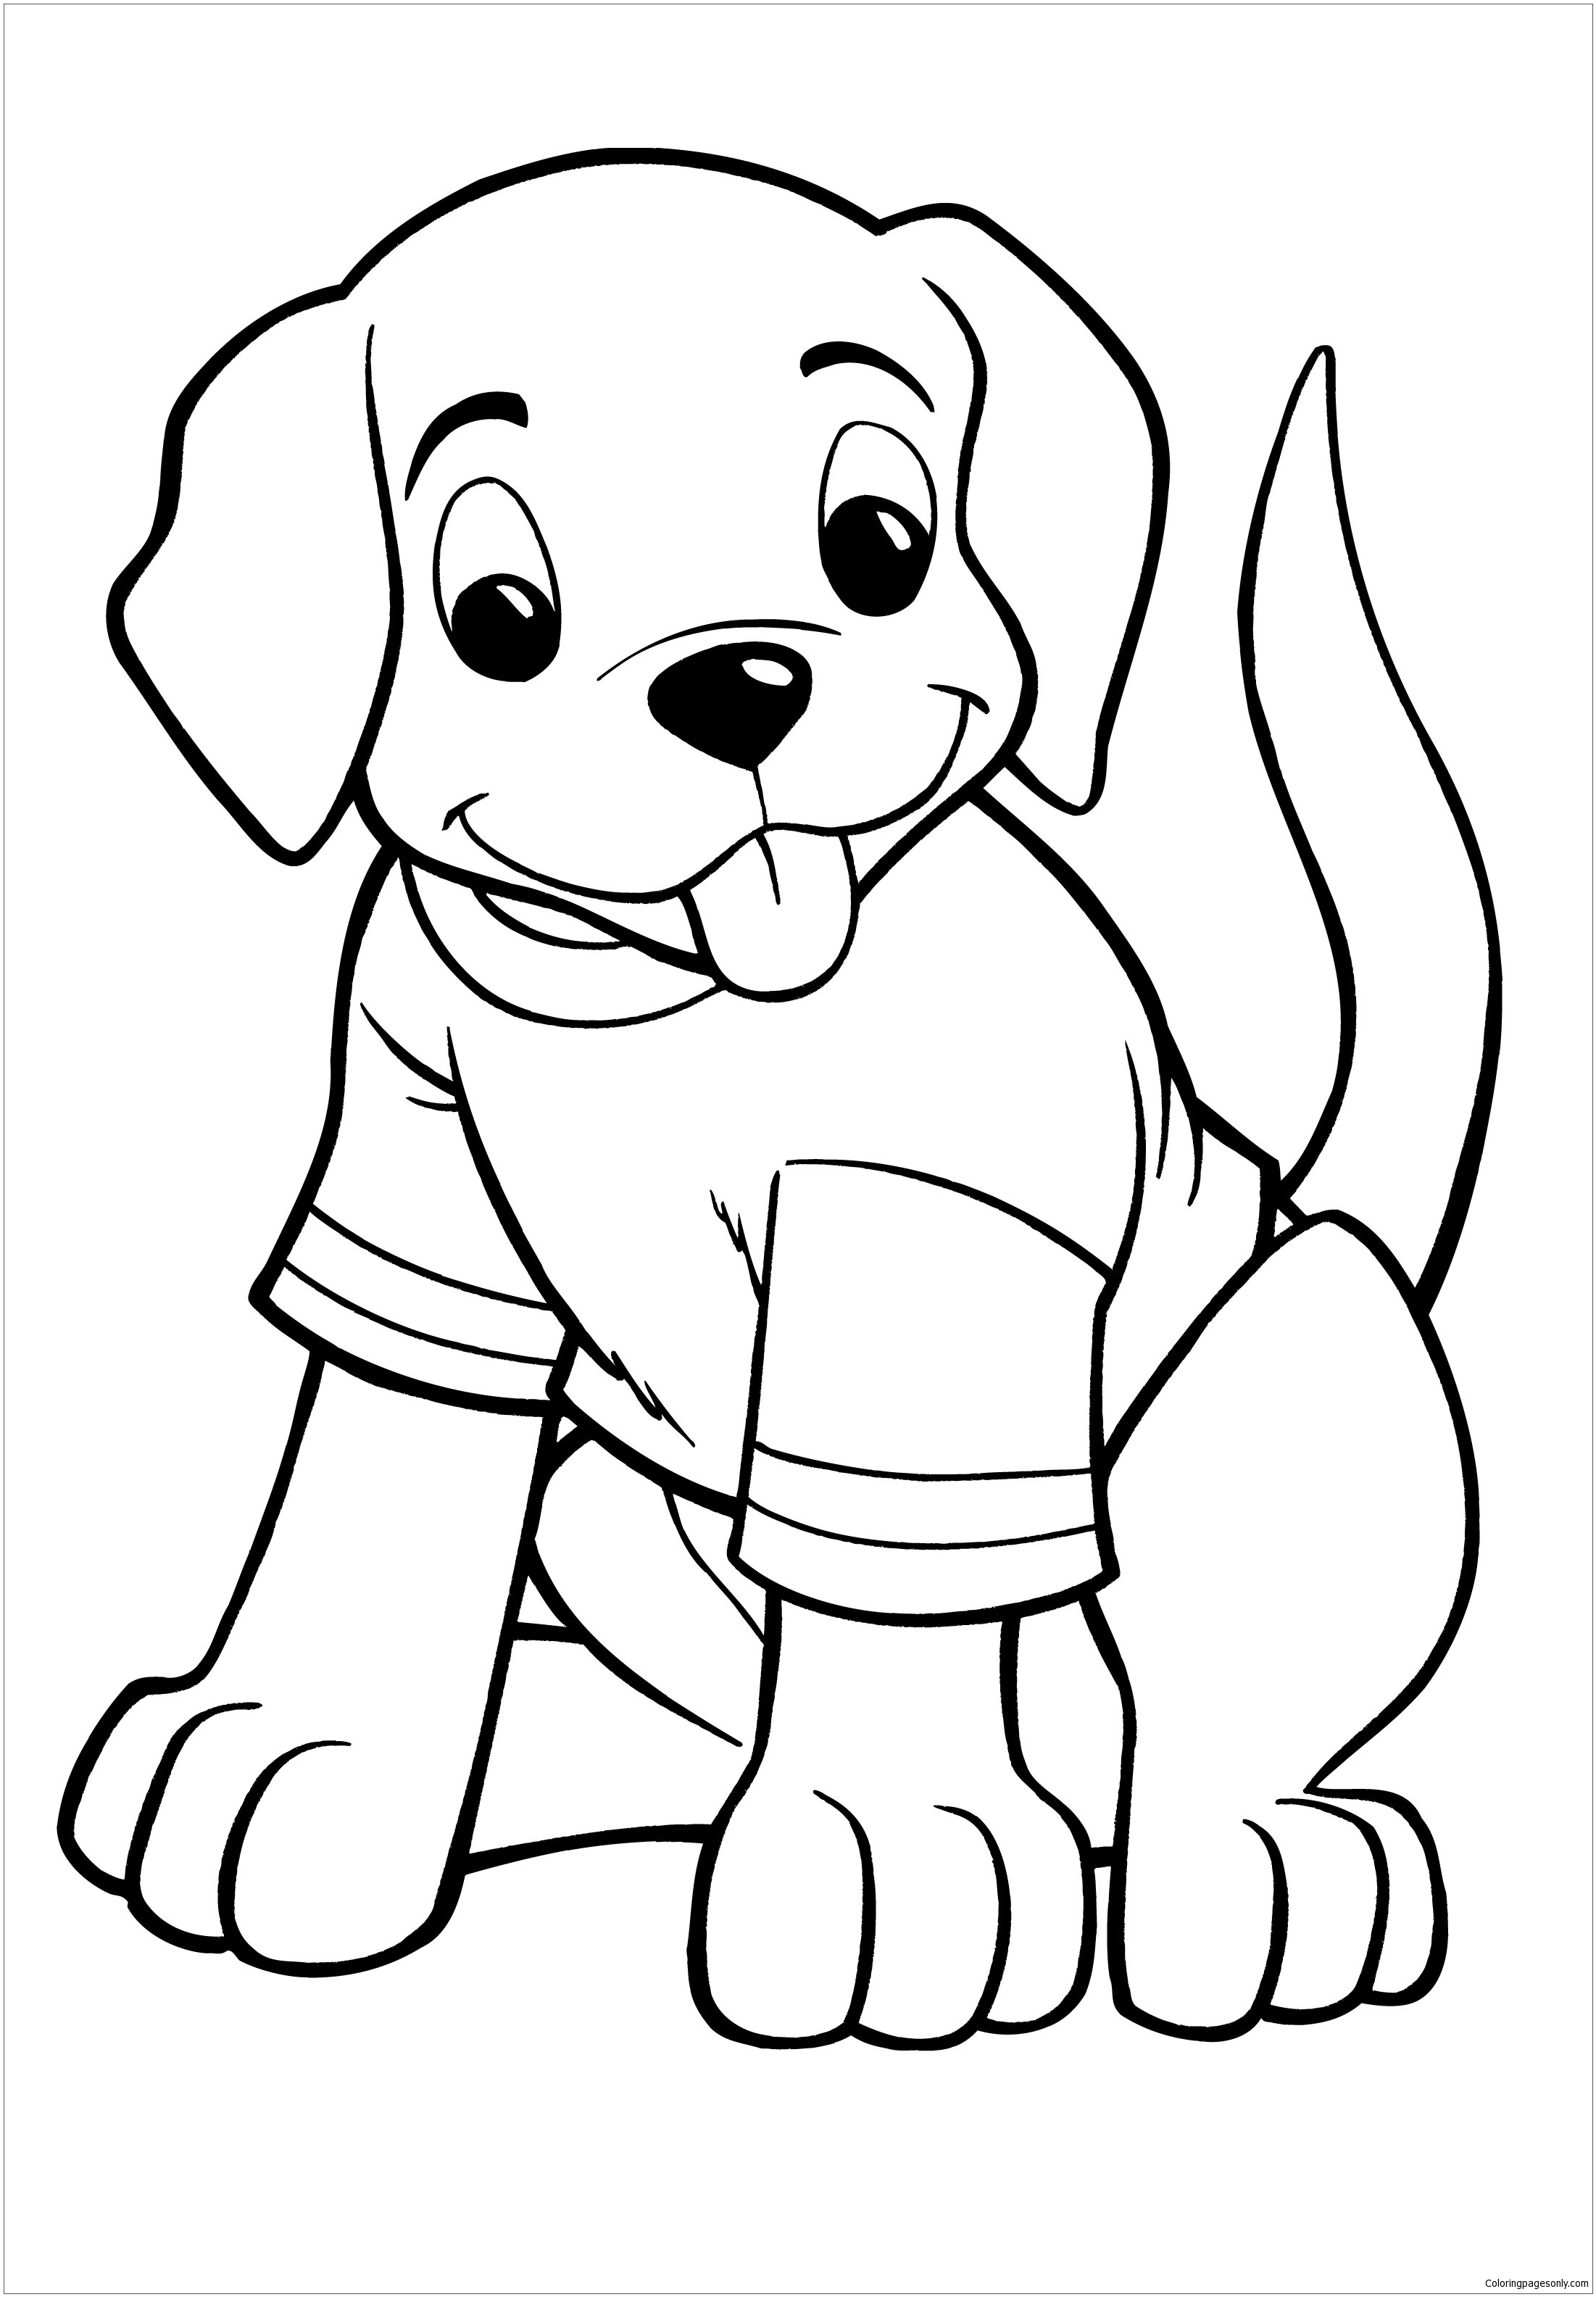 beagle puppy coloring pages beagle puppy coloring page free coloring pages online beagle pages puppy coloring